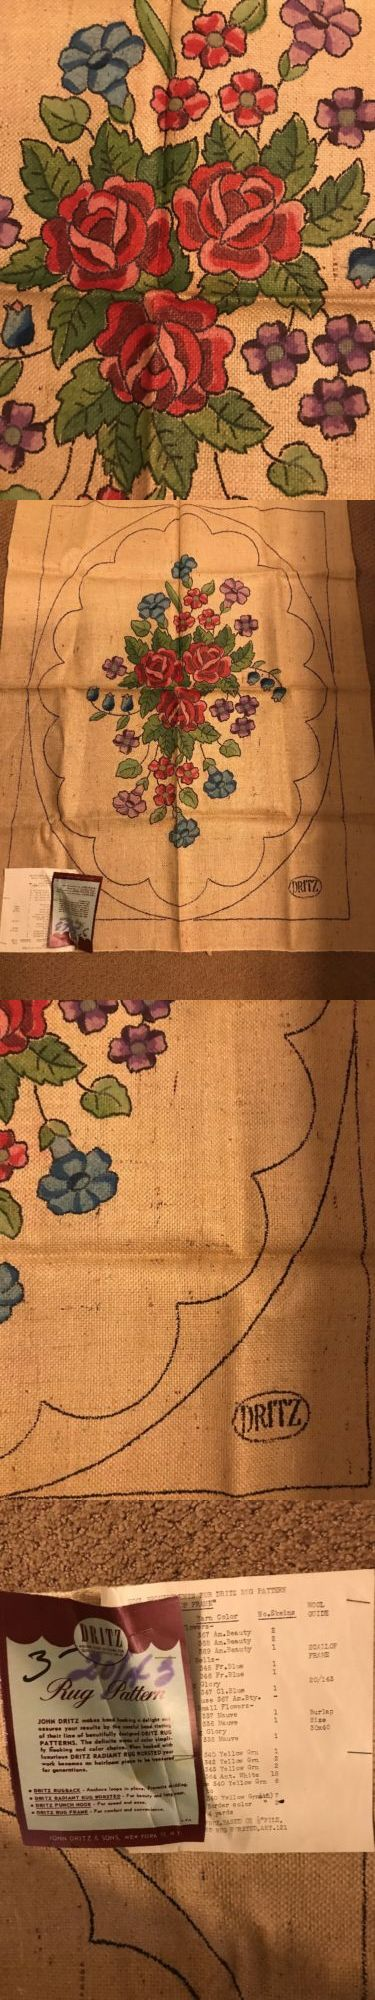 Primitive Hooking Patterns 157031: Hand Tinted Hand Hooking Dritz Floral Morning Glory Burlap Rug Pattern 30 X 40 -> BUY IT NOW ONLY: $50 on eBay!